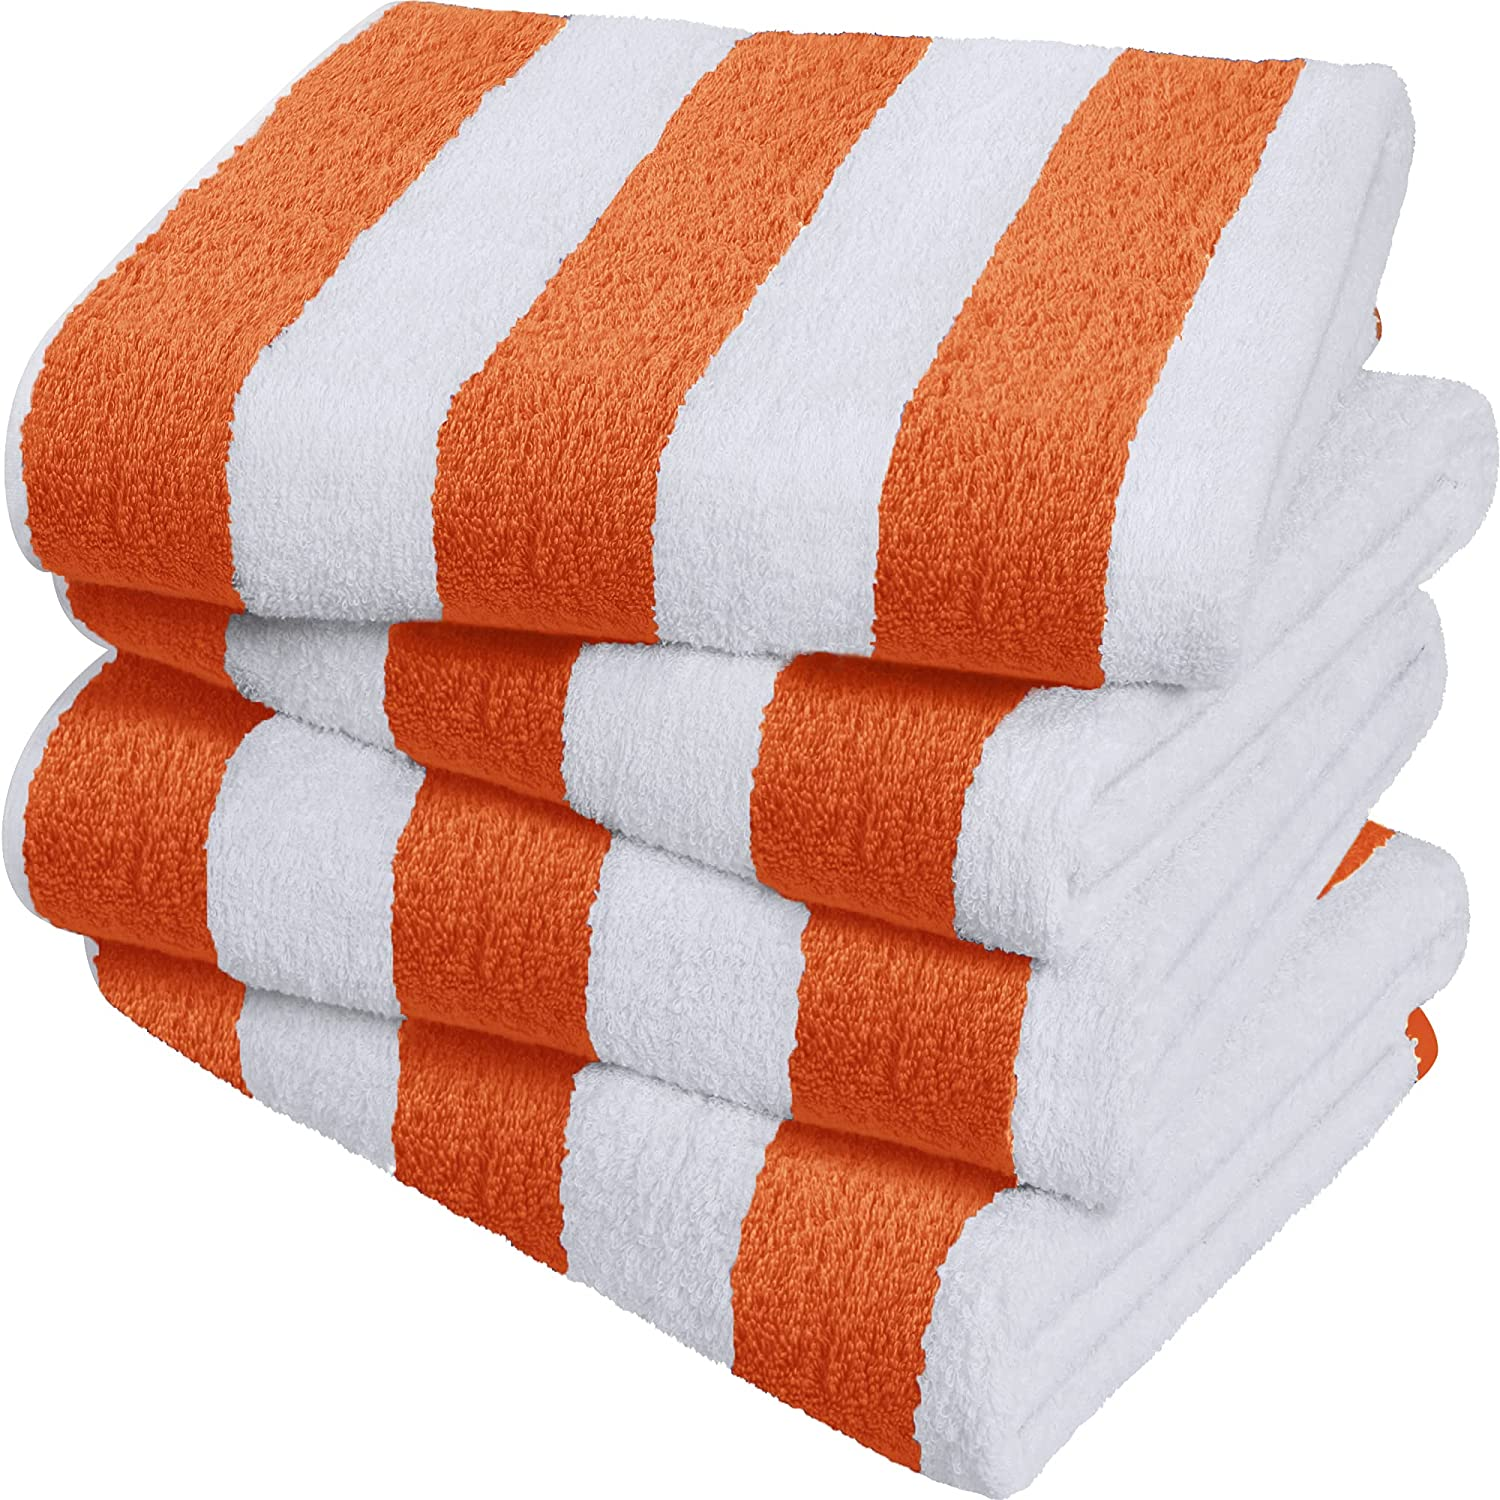 Utopia Towels Cabana Stripe Beach Towels, Orange, (30 x 60 Inches) - 100% Ring Spun Cotton Large Pool Towels, Soft and Quick Dry Swim Towels (Pack of 4)